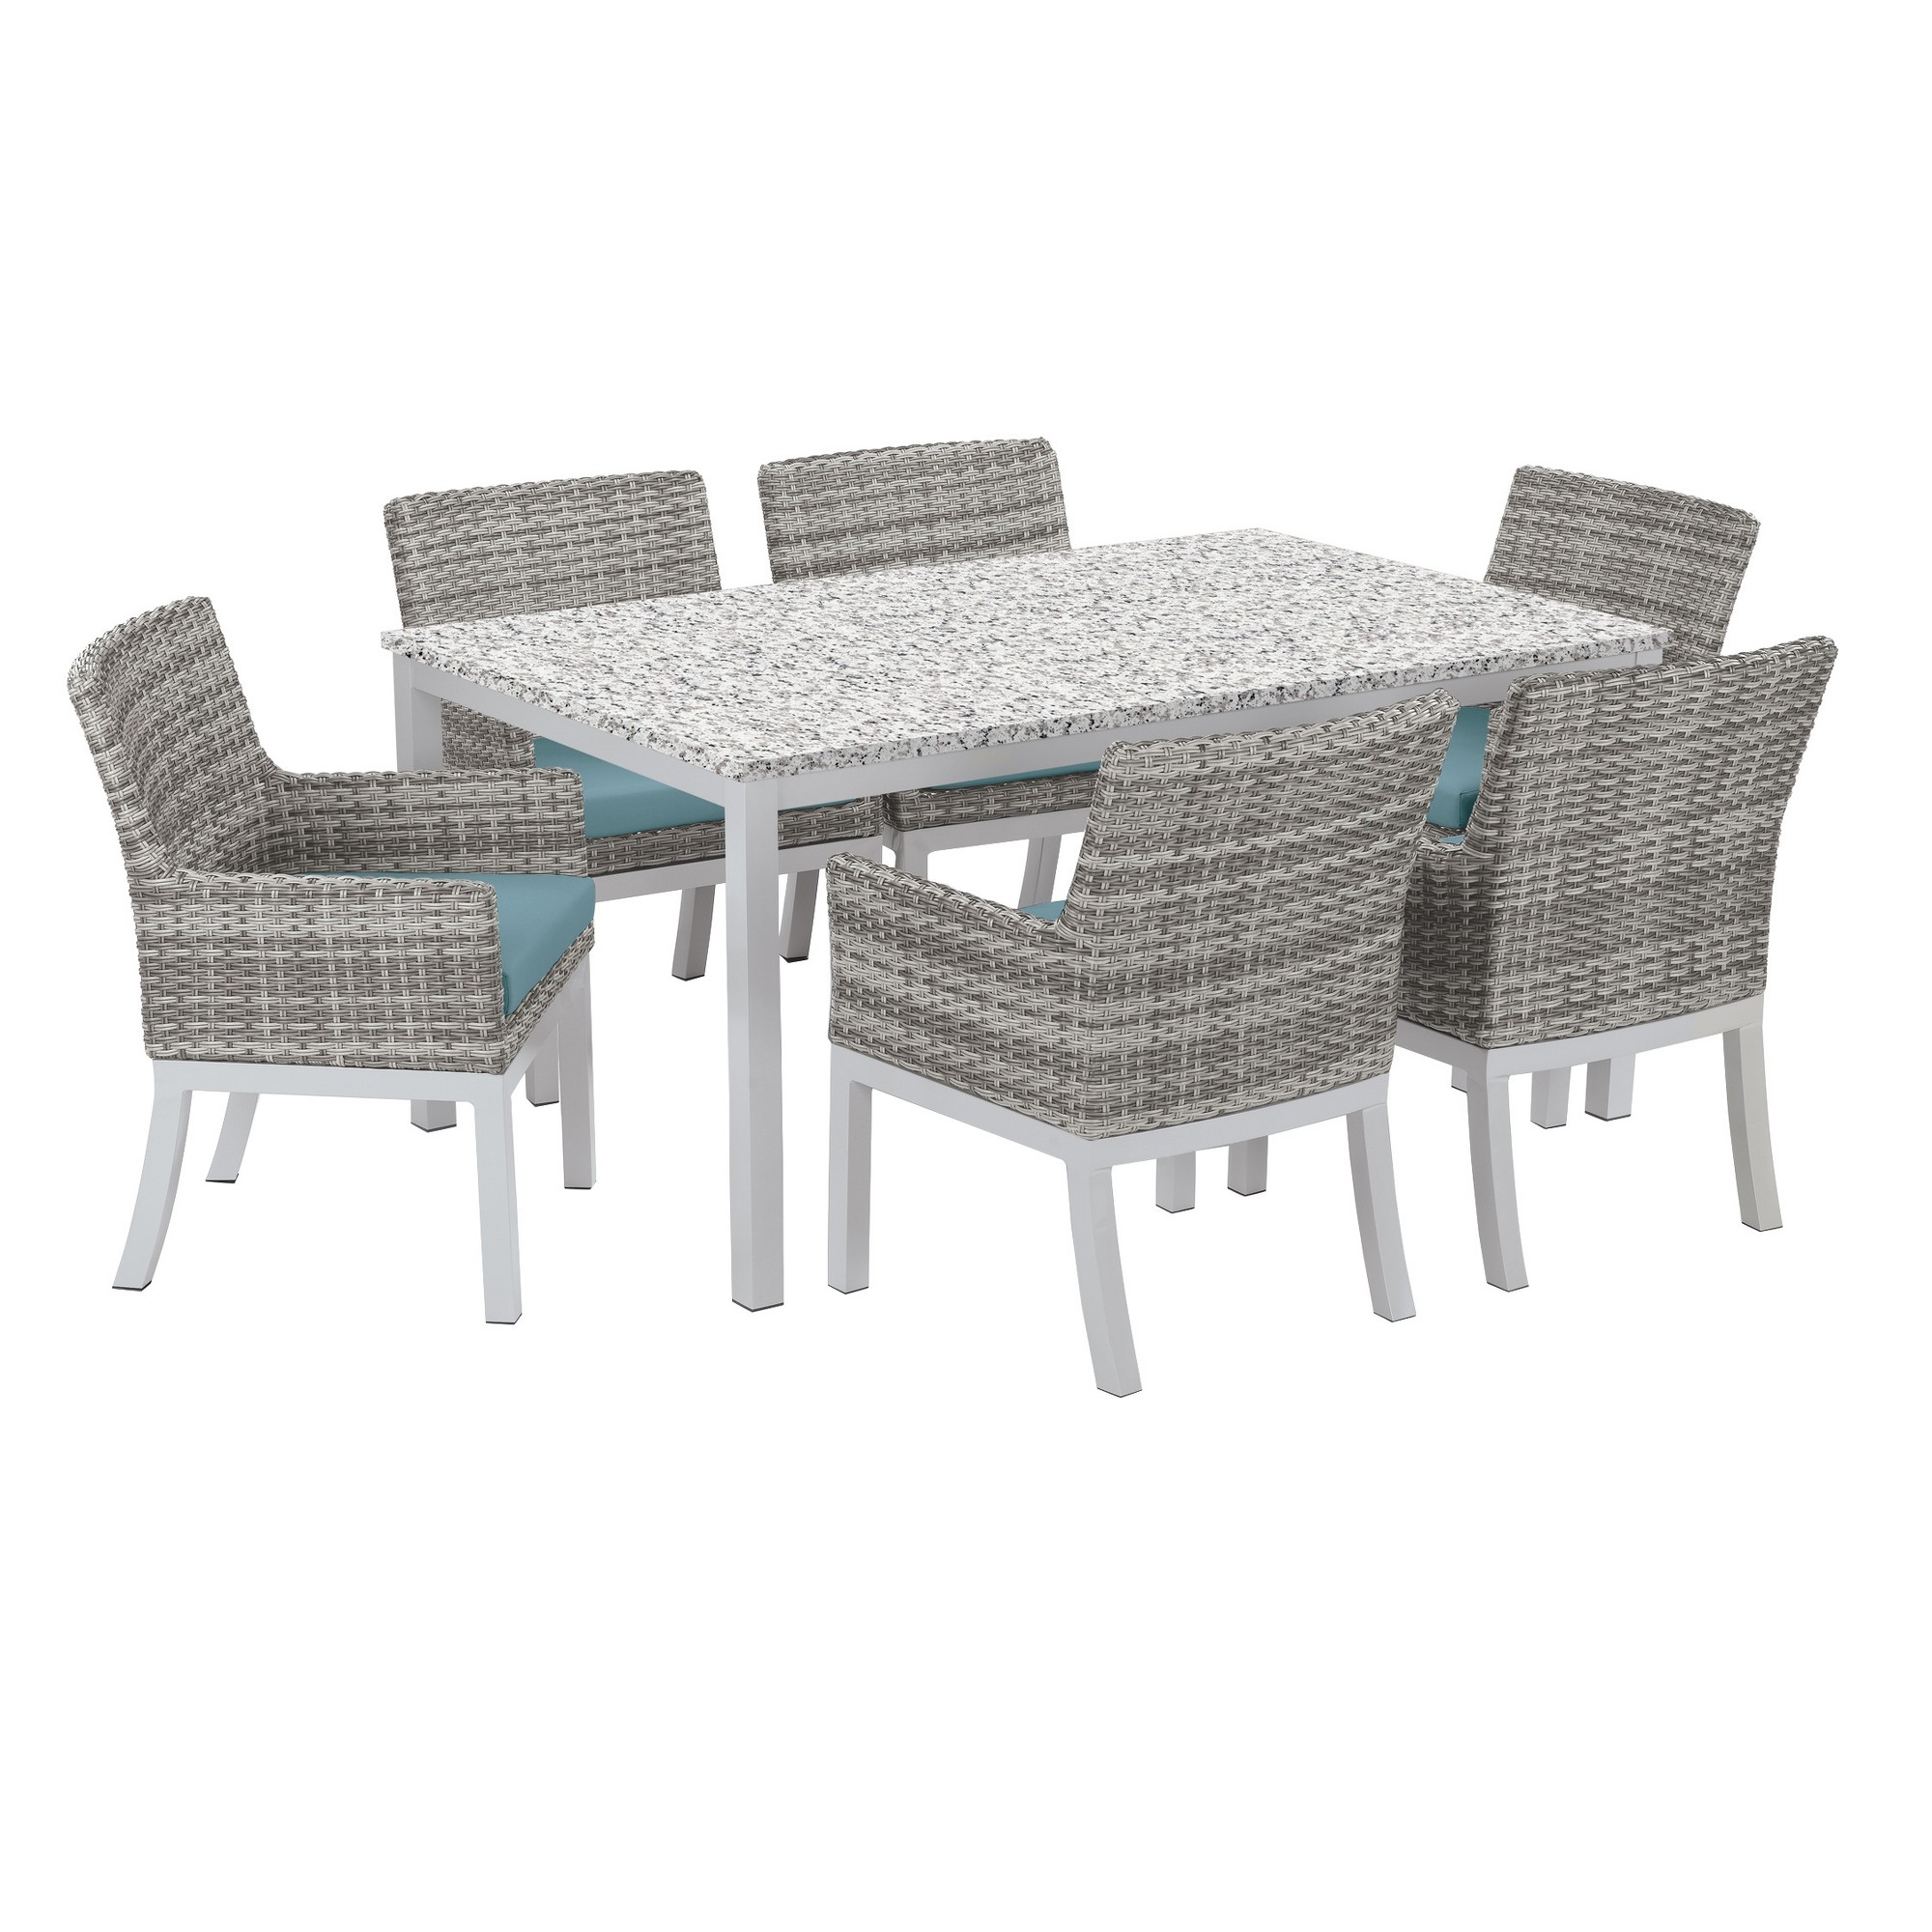 Travira 7pc dining set with 63x40 table powder coated aluminum lite core